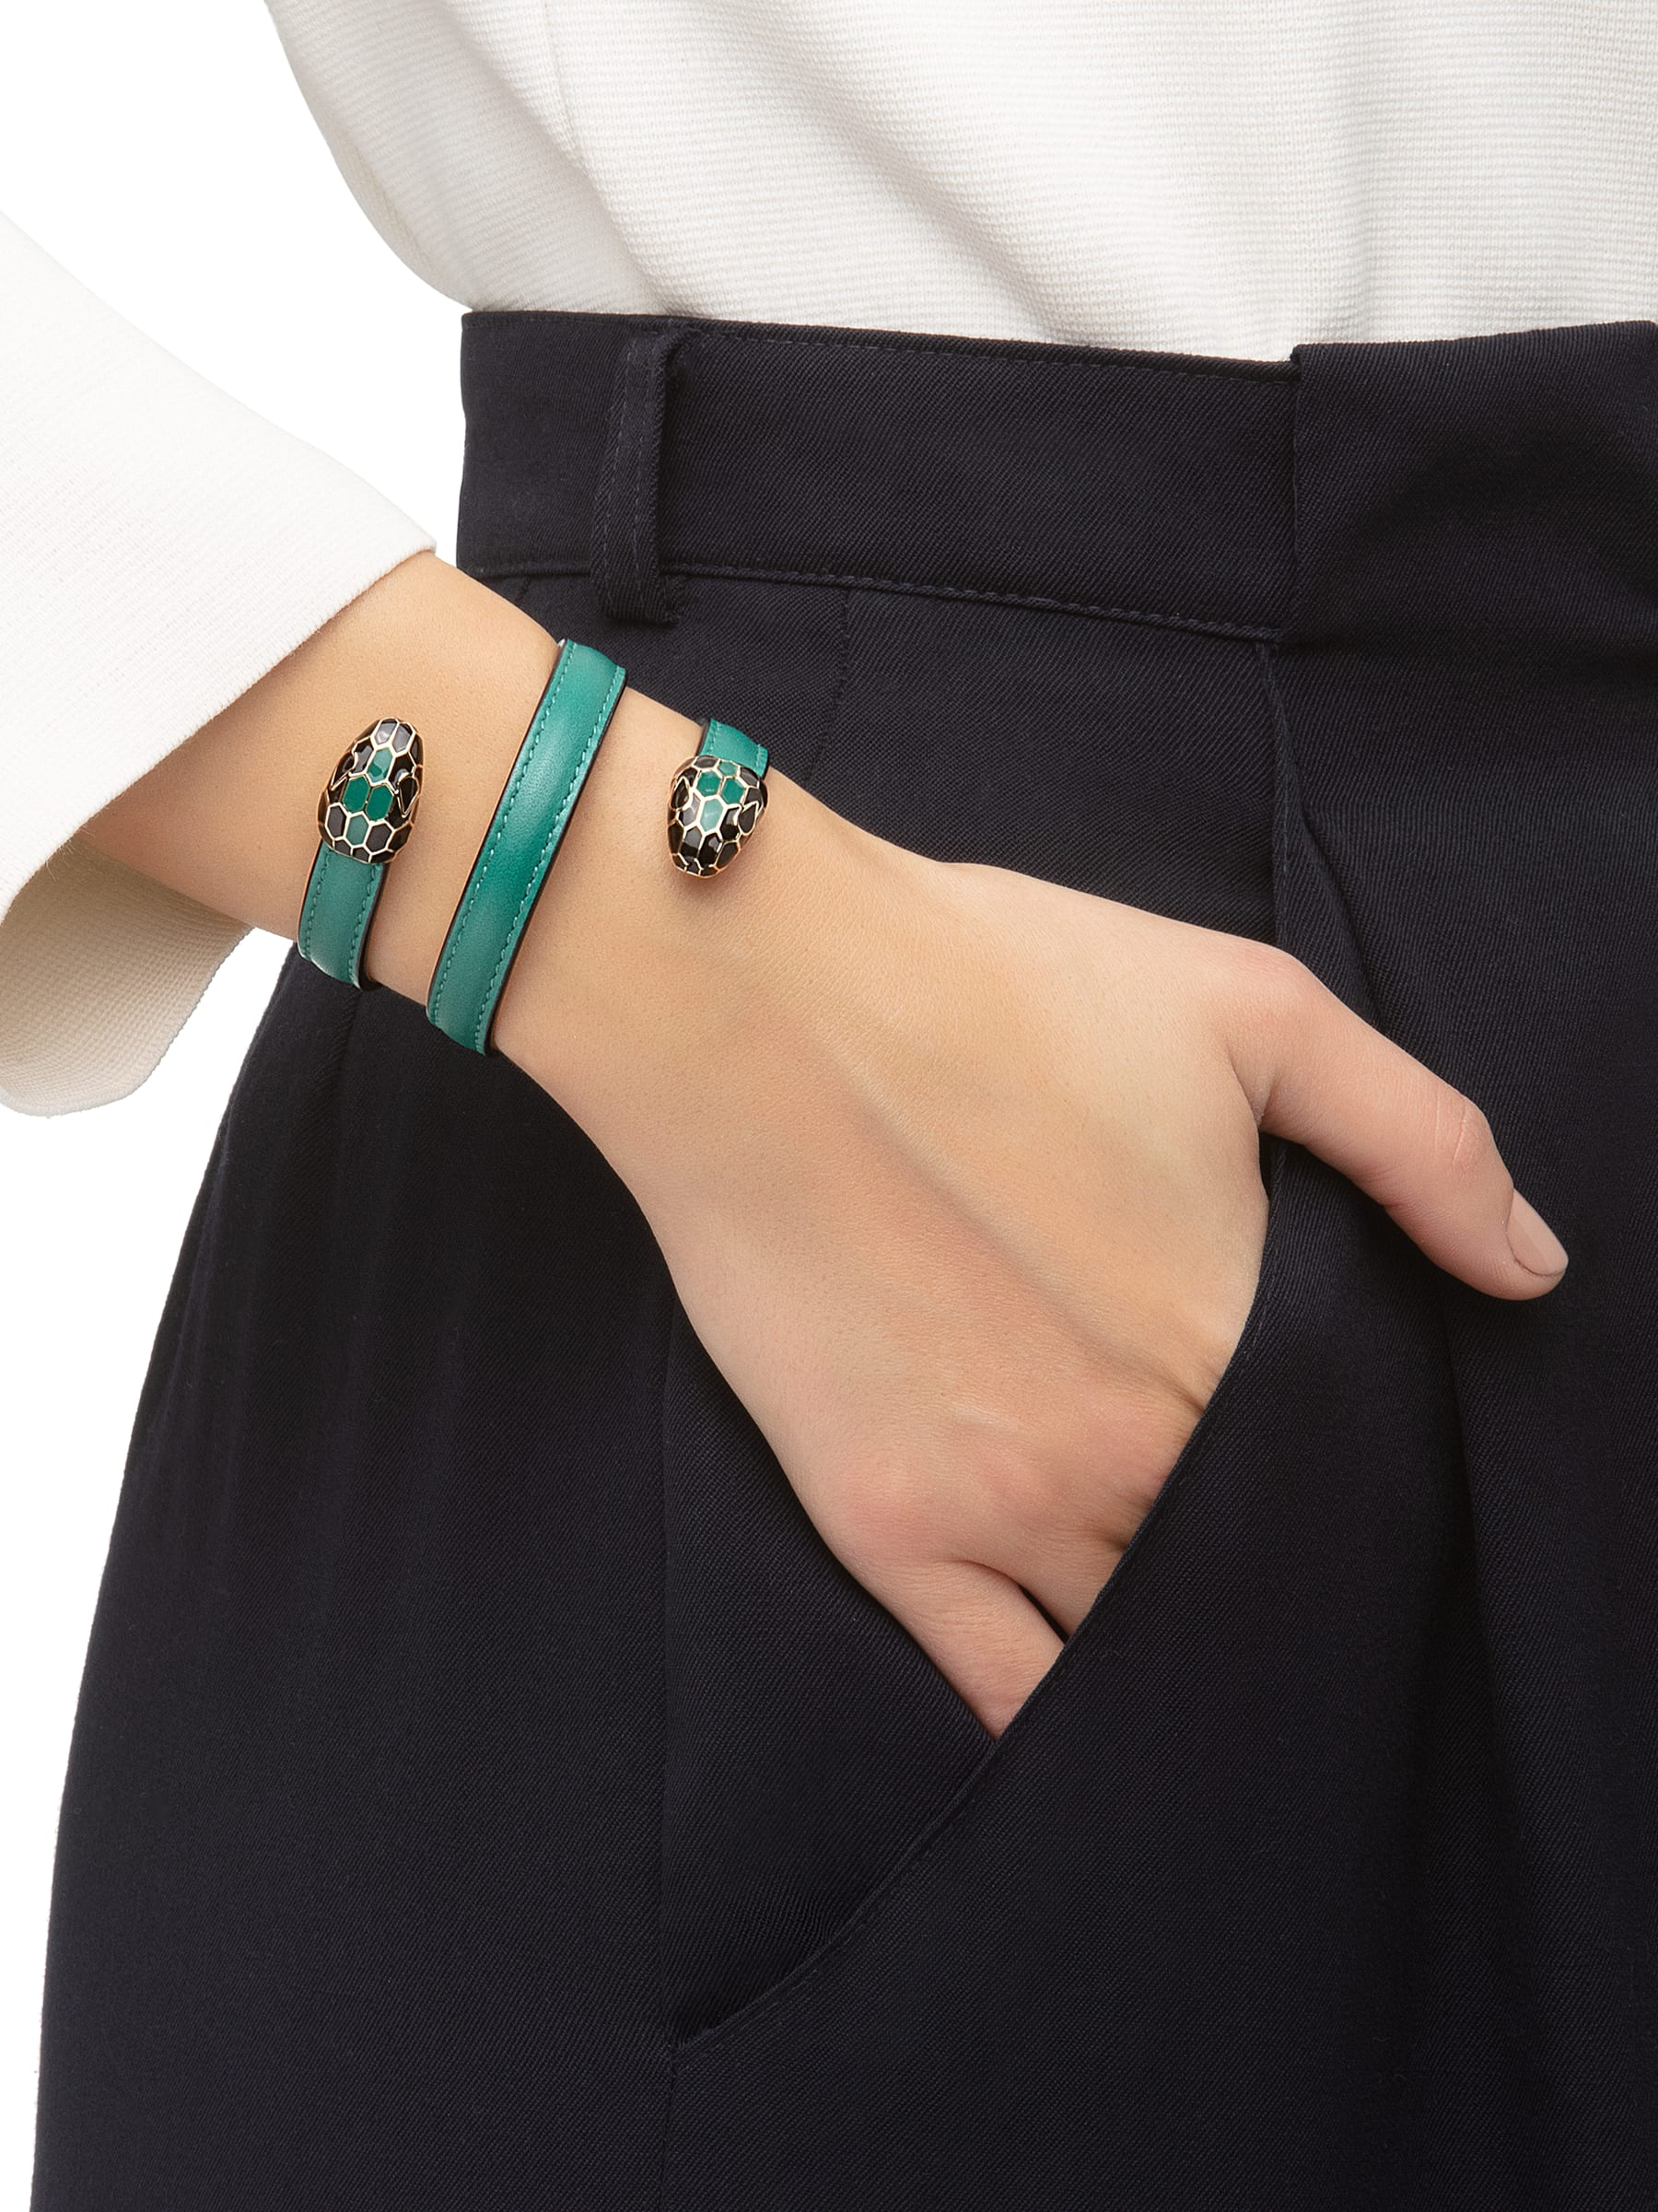 """Serpenti Forever"" multi-coiled rigid Cleopatra bracelet in emerald green calf leather, with brass light gold plated hardware. Iconic double snakehead decor enamelled in black and emerald green, finished with seductive eyes in black enamel. Cleopatra-CL-EG image 2"